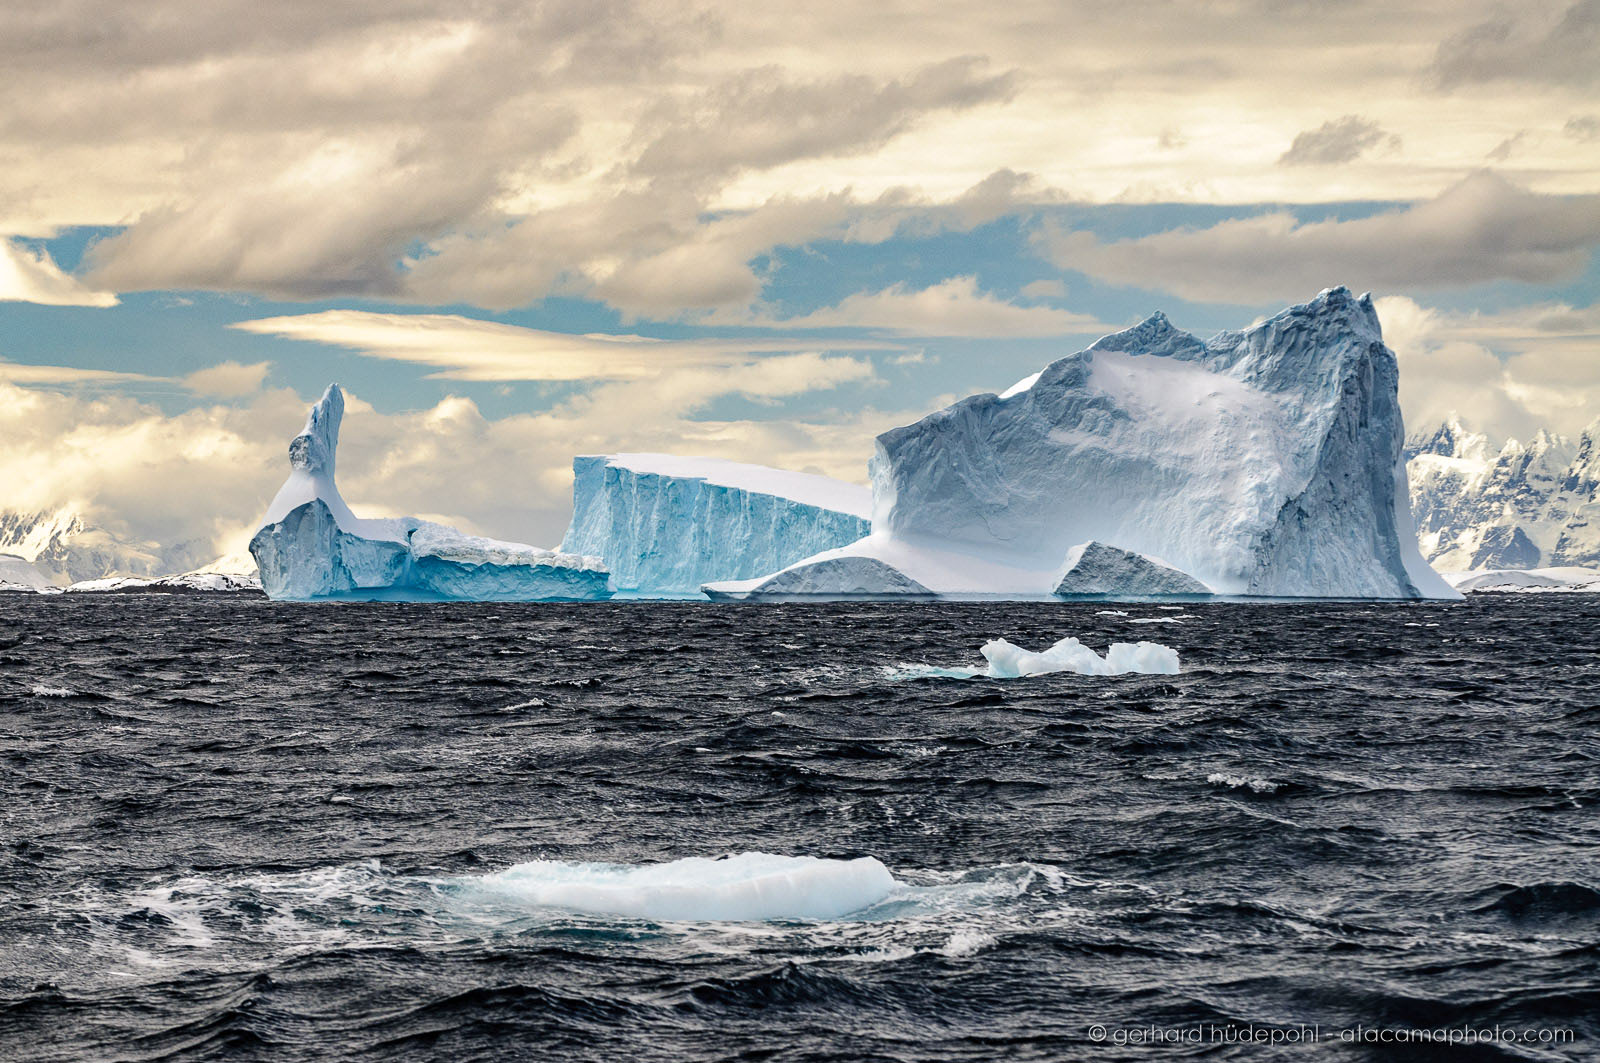 Frozen world of icebergs, mountains and clouds in Antarctica